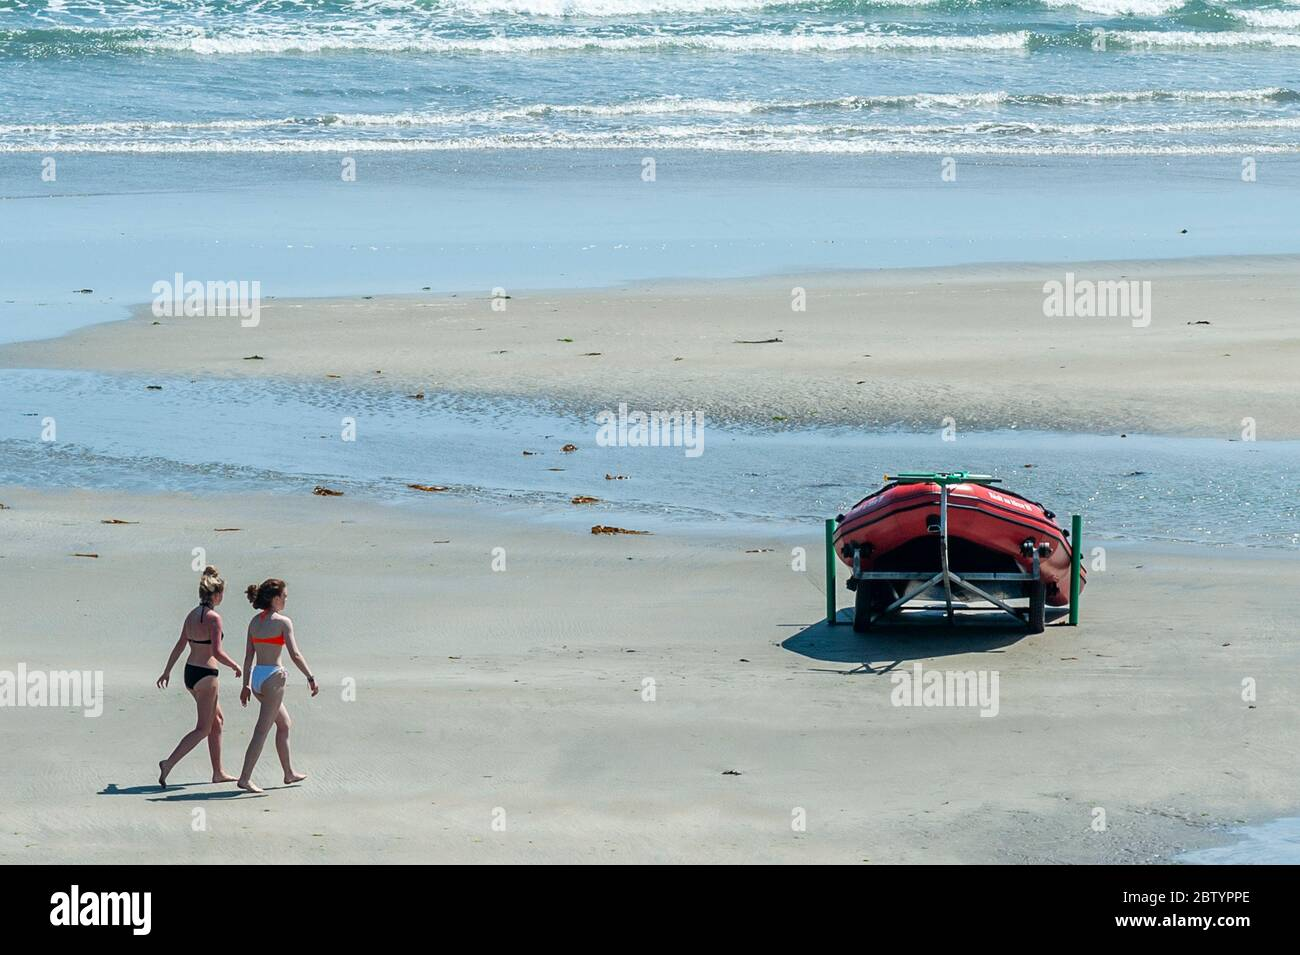 inchydoney-west-cork-ireland-28th-may-2020-people-flocked-to-inchydoney-beach-today-on-a-day-of-warm-sunshine-and-high-winds-the-weather-is-expected-to-get-warmer-over-the-bank-holiday-weekend-with-temperatures-expected-to-reach-the-high-20s-on-monday-credit-ag-newsalamy-live-news-2BTYPPE.jpg